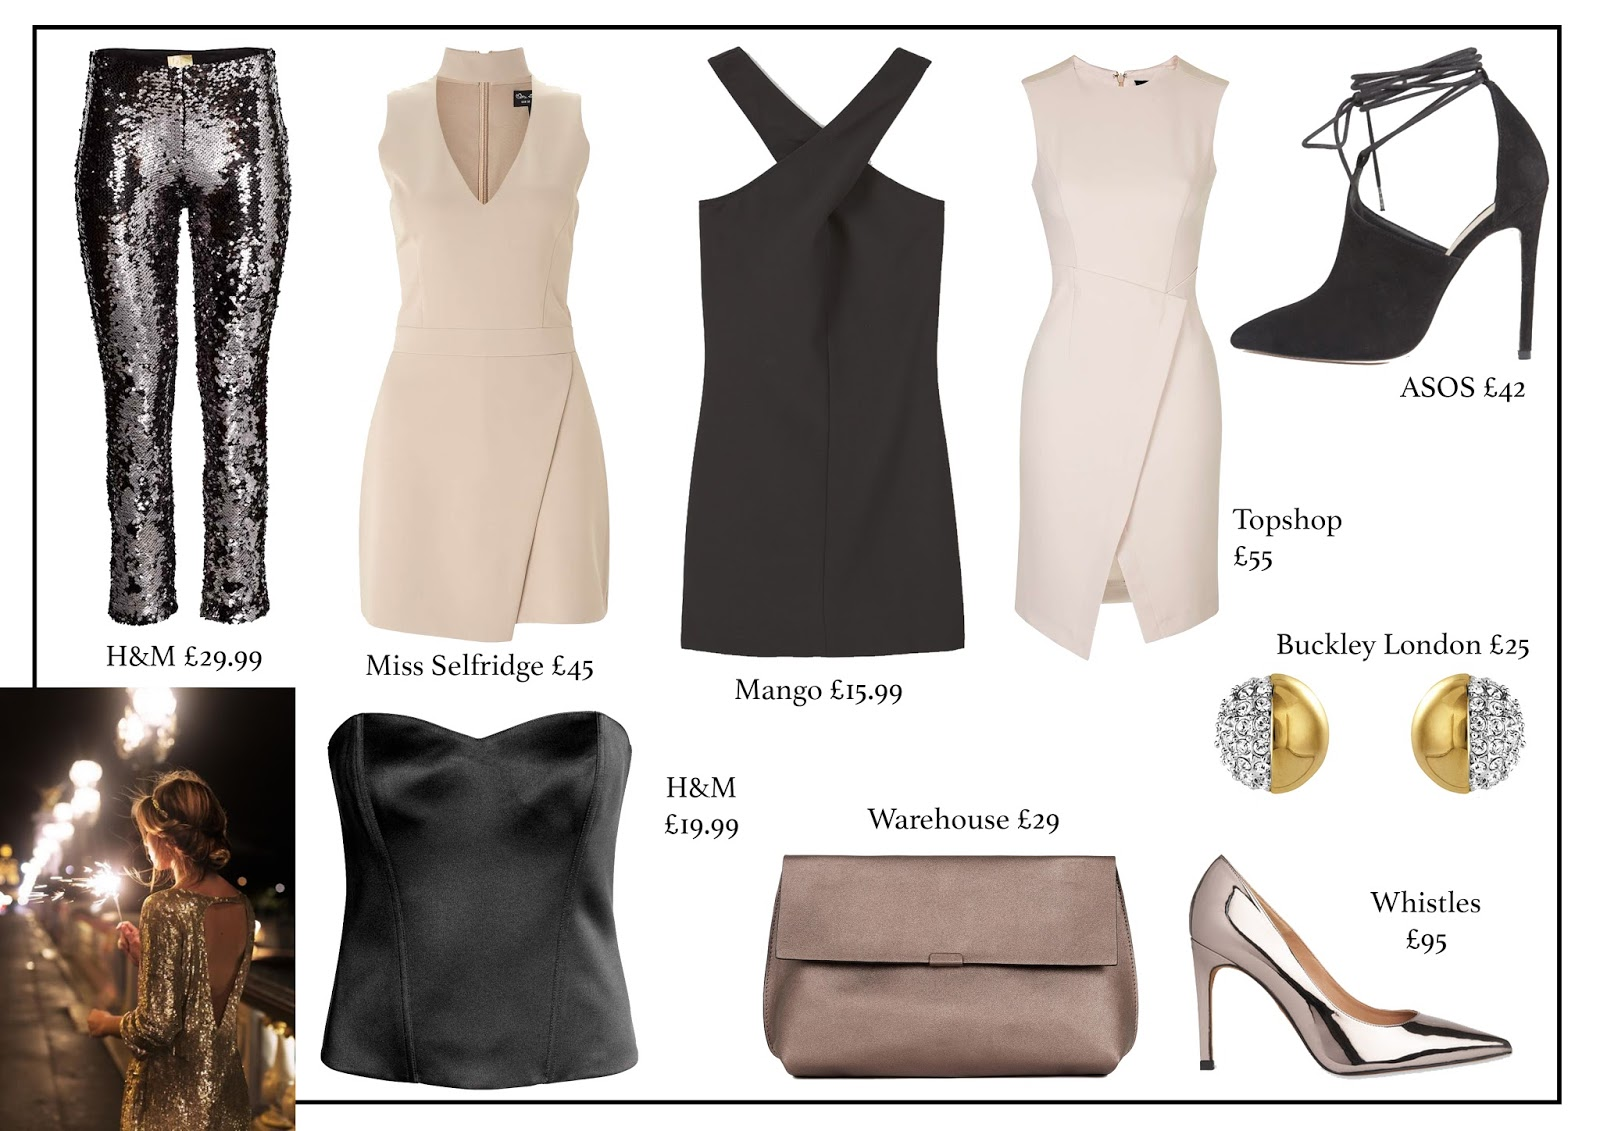 new years eve, fashion, aw16, fashion blog, h&m, miss selfridge, mango, topshop, asos, warehouse, buckley london, whistles